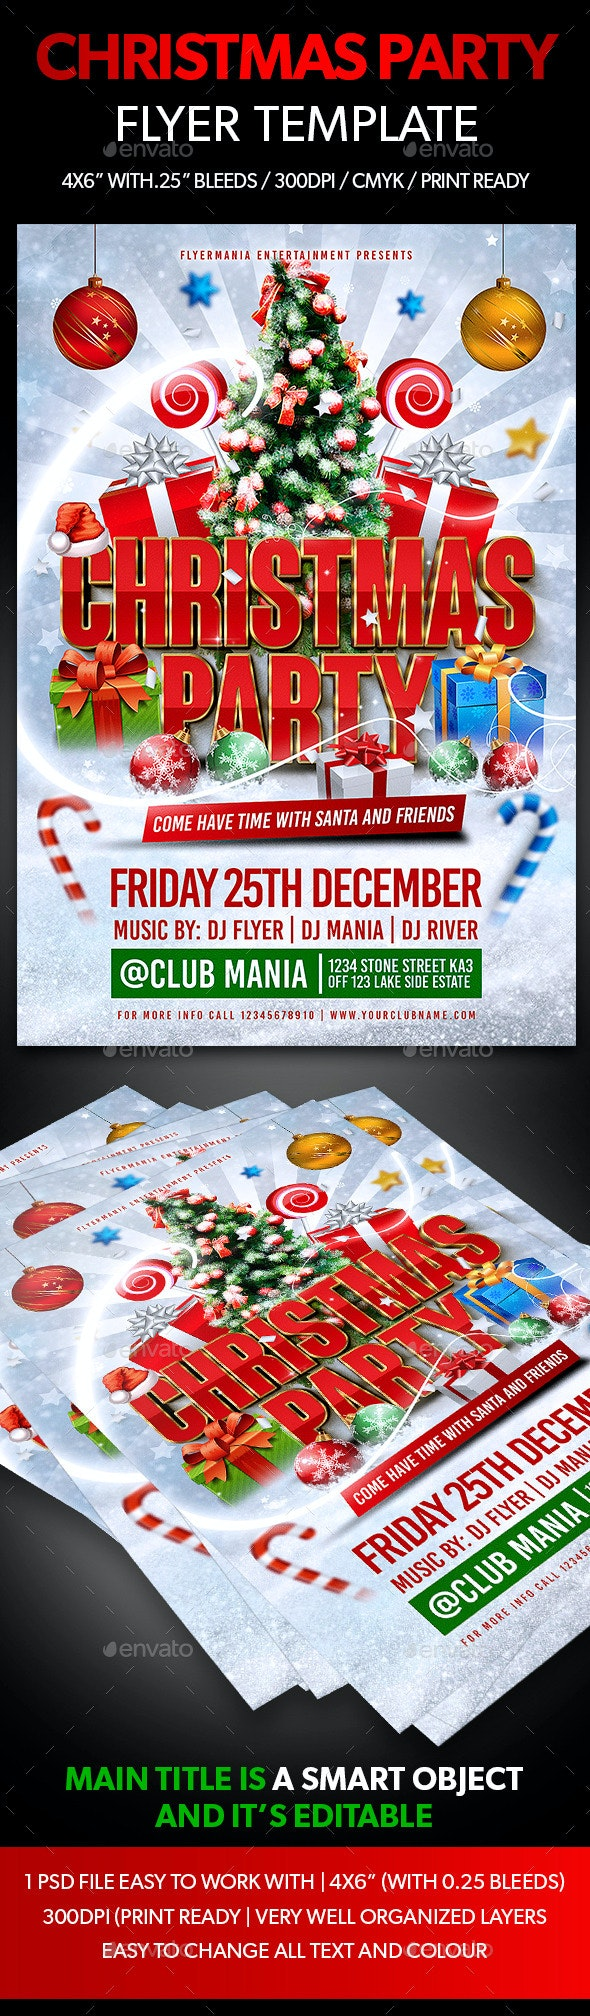 Christmas Party Flyer Template - Holidays Events